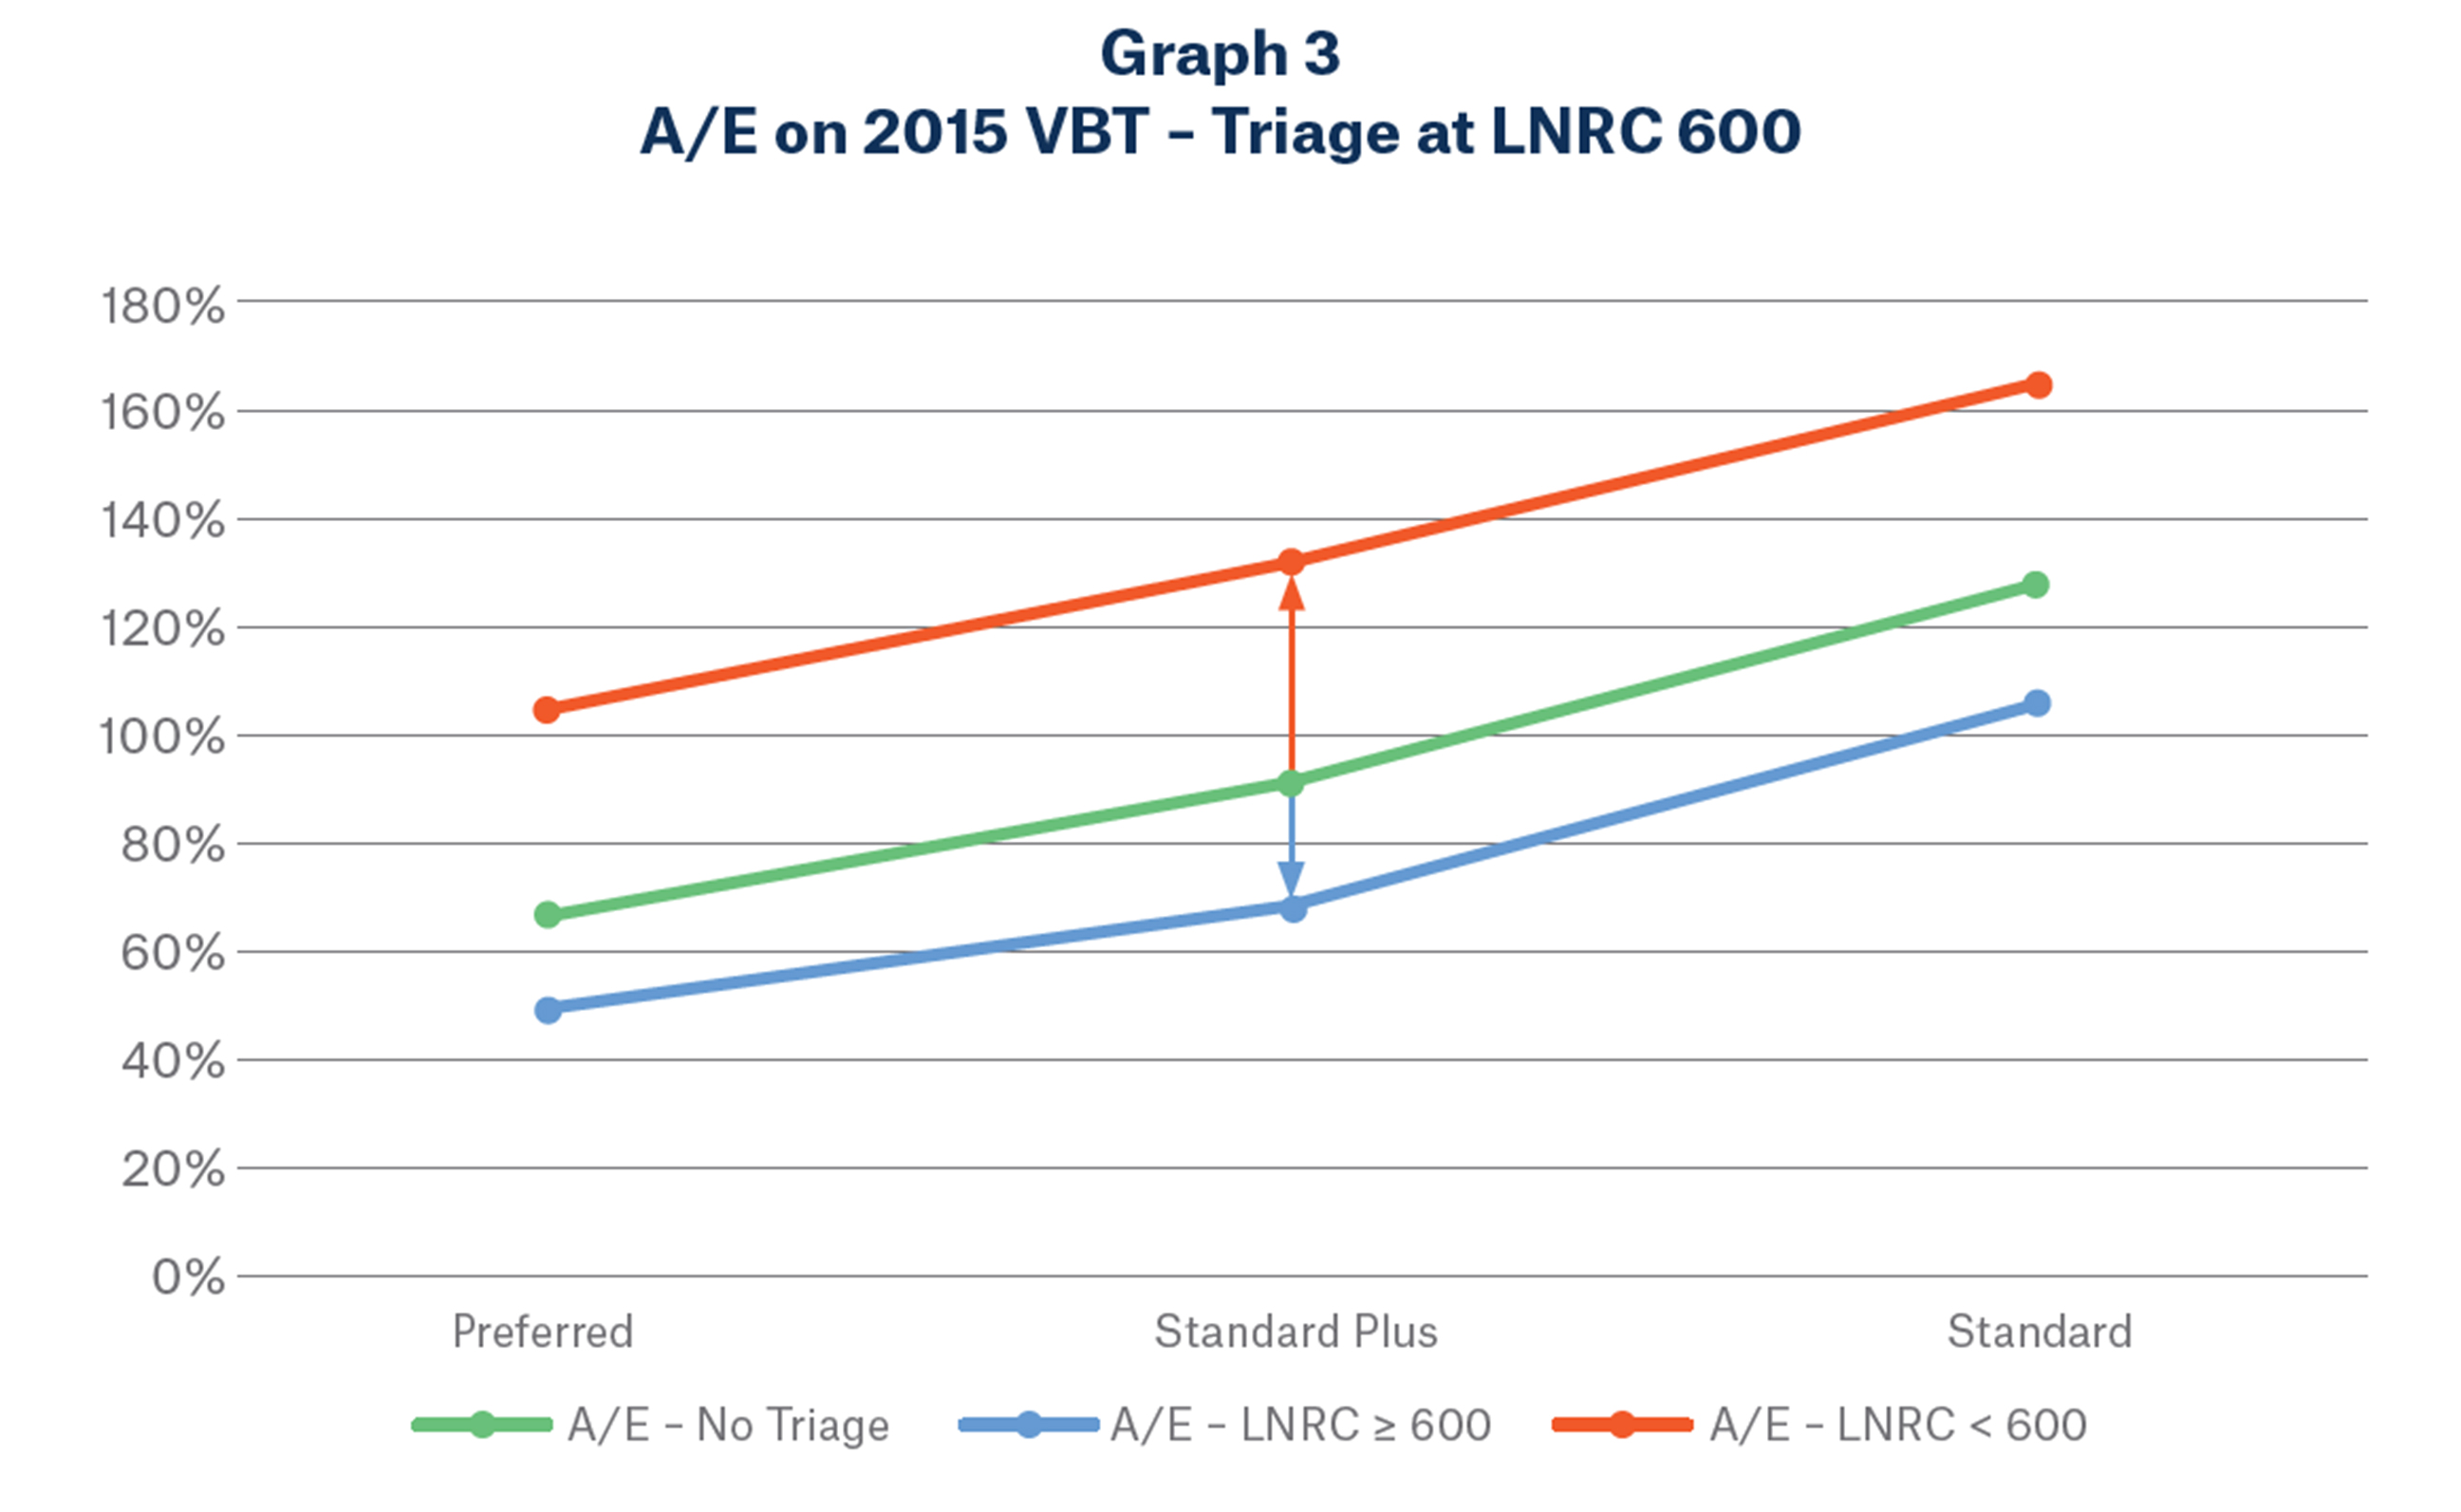 Graph 3 image - A/E on 2015 VBT - Triage at LNRC 600